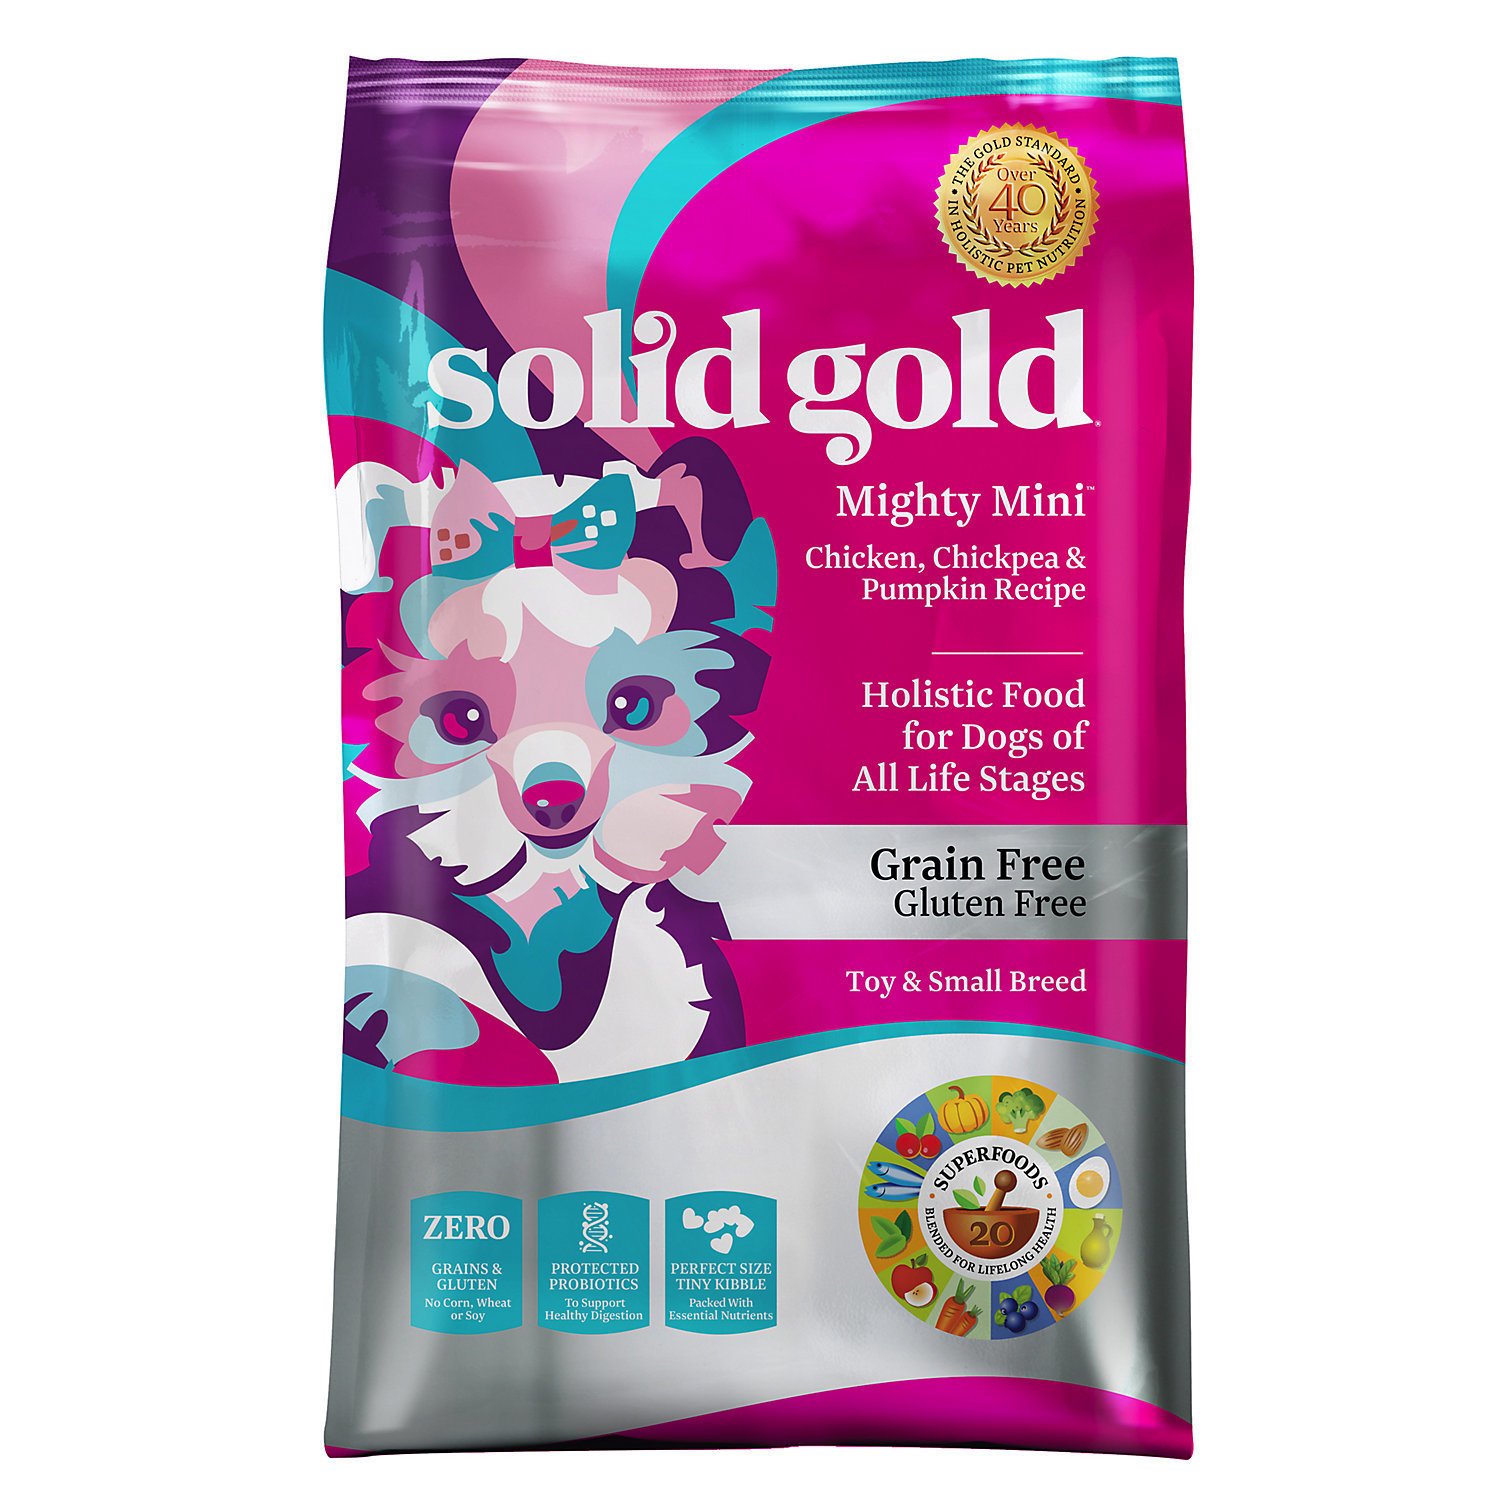 Solid Gold Mighty Mini Grain and Gluten Free Dry Dog Food, Chicken, Chickpeas 11 LBS.  (6/18) (A.M2)